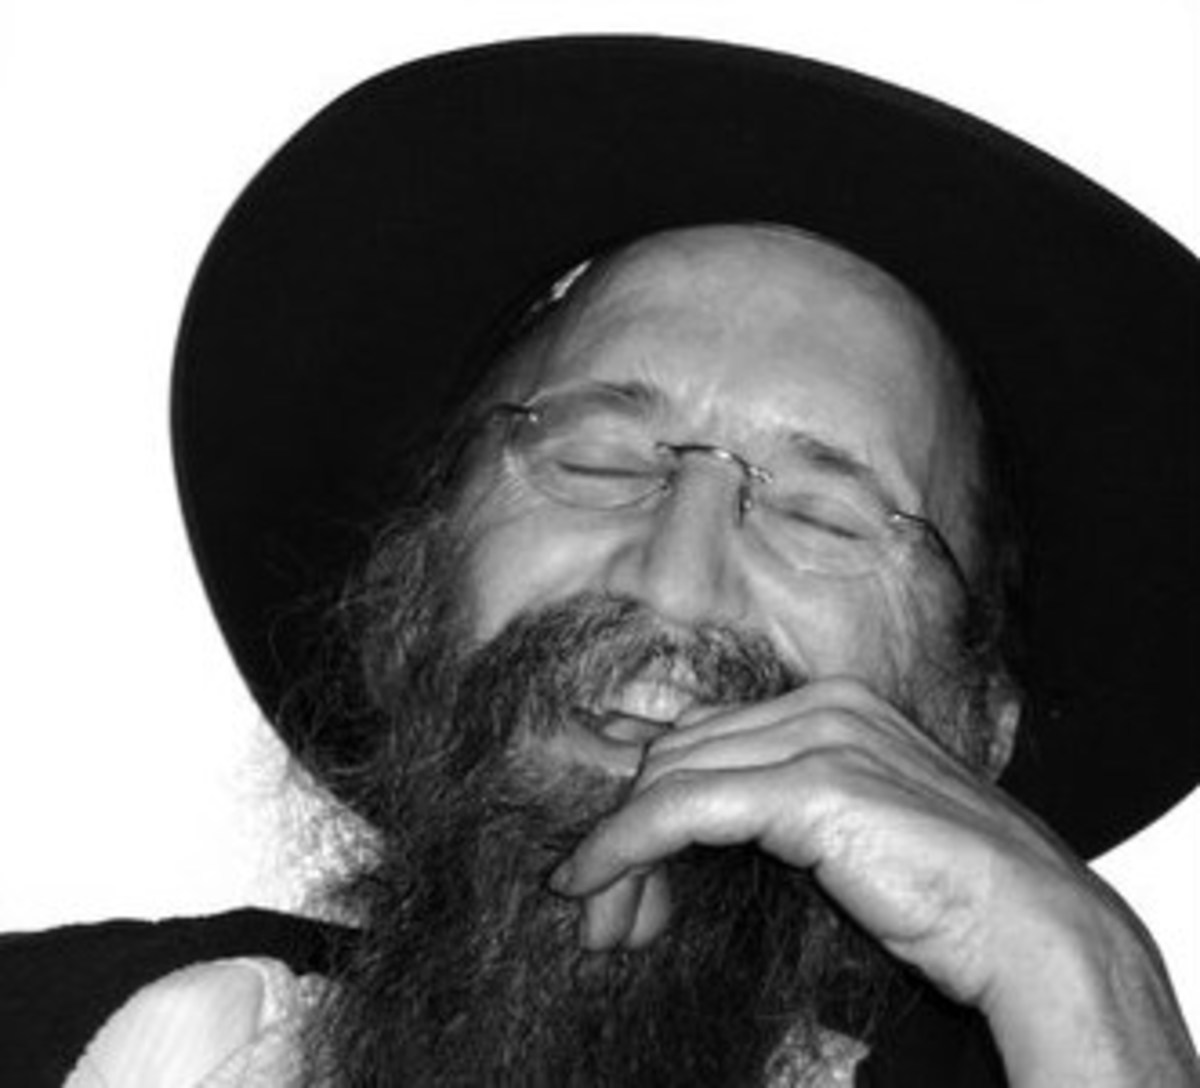 (Photo: Rabbi Ben-Tzion Welton)